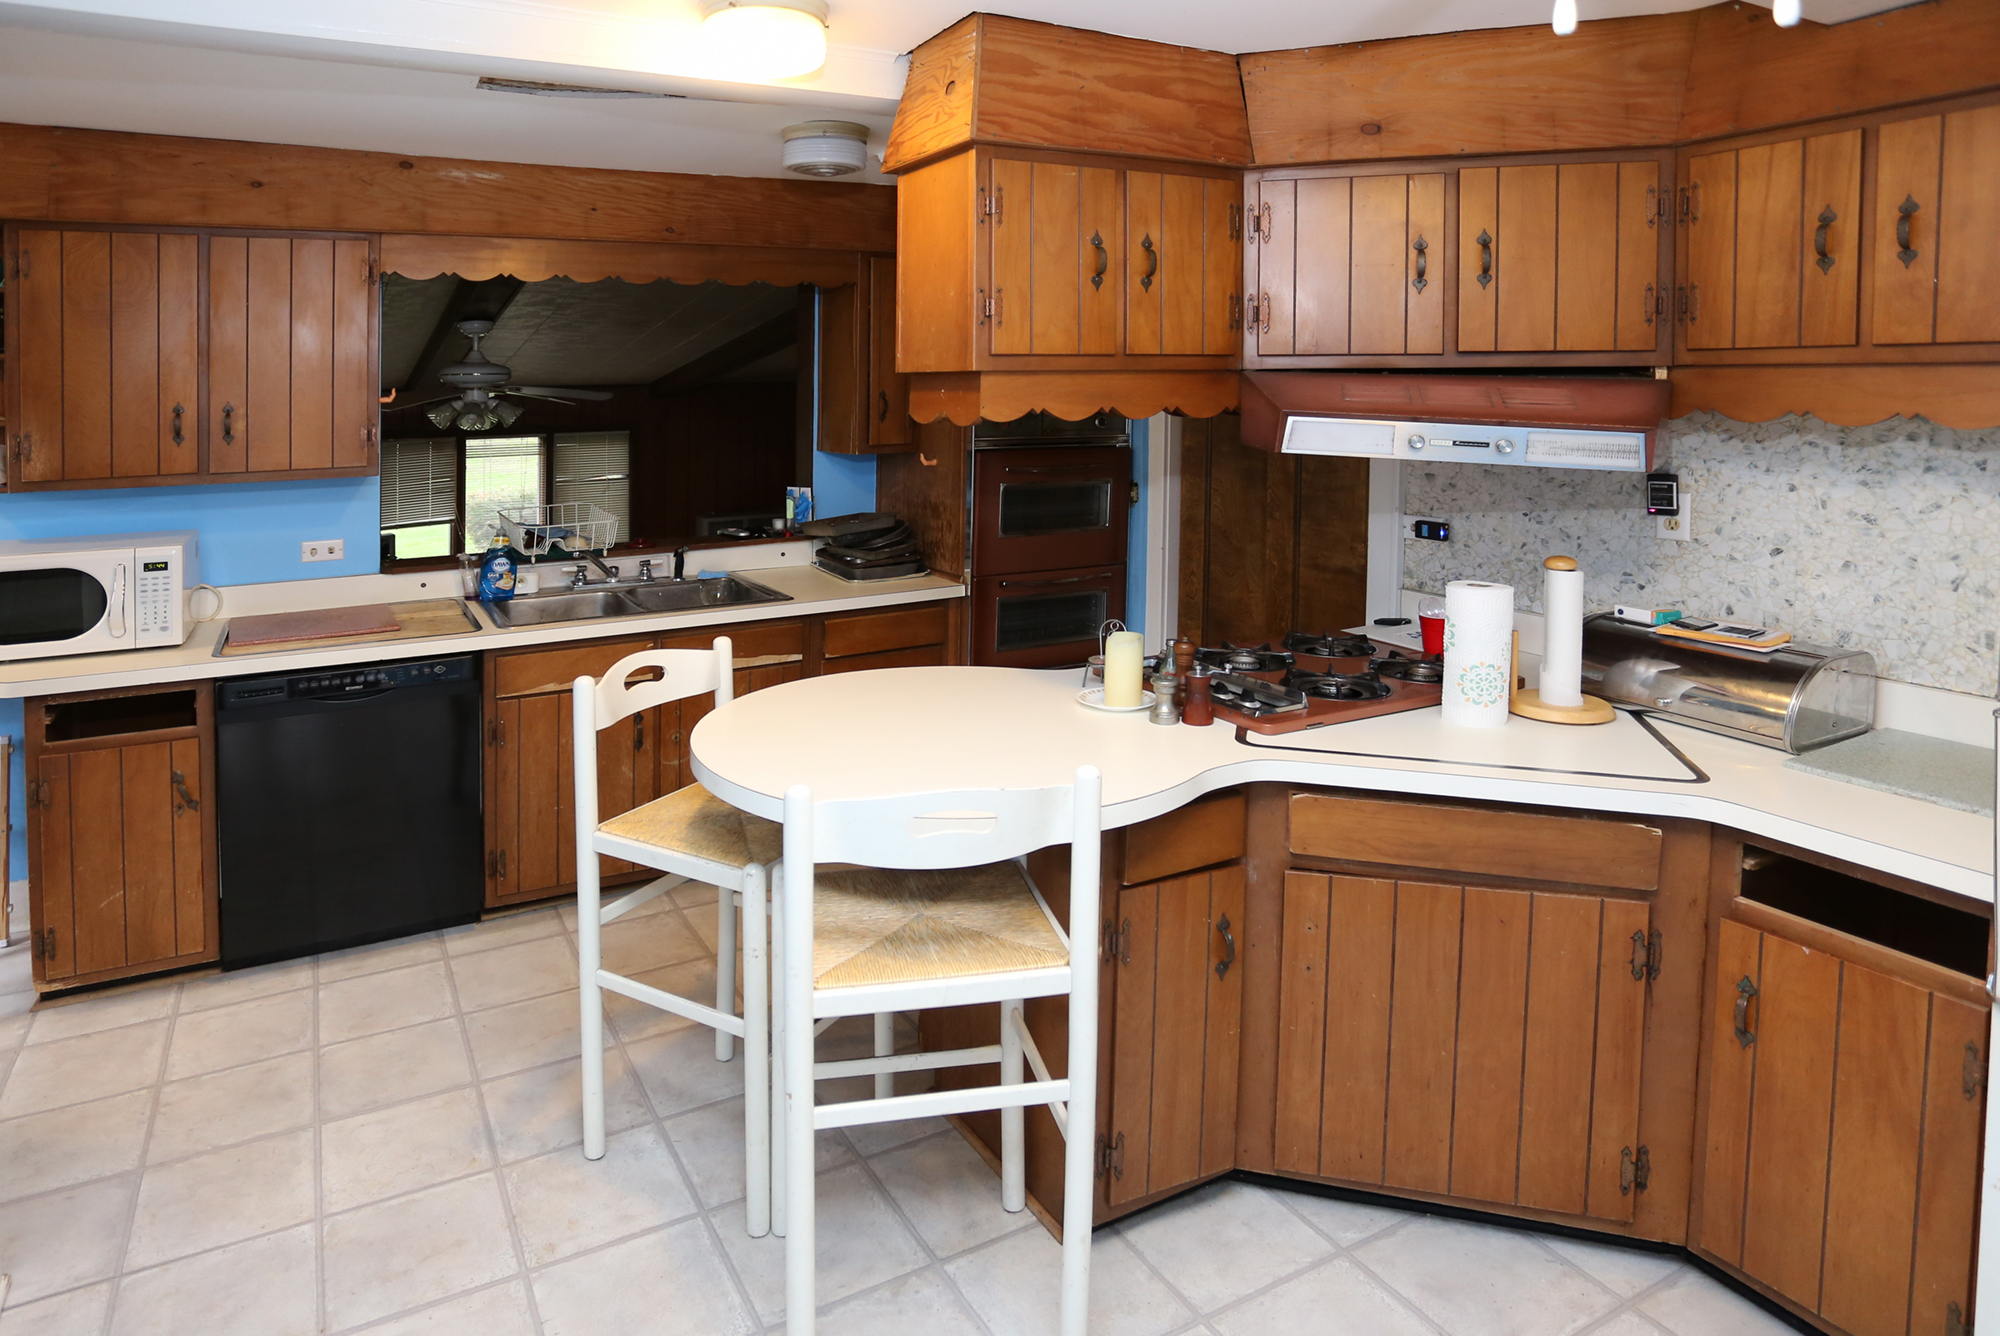 Ugly Kitchen Contest Winner Before/After Photos! | Seigles Cabinet ...